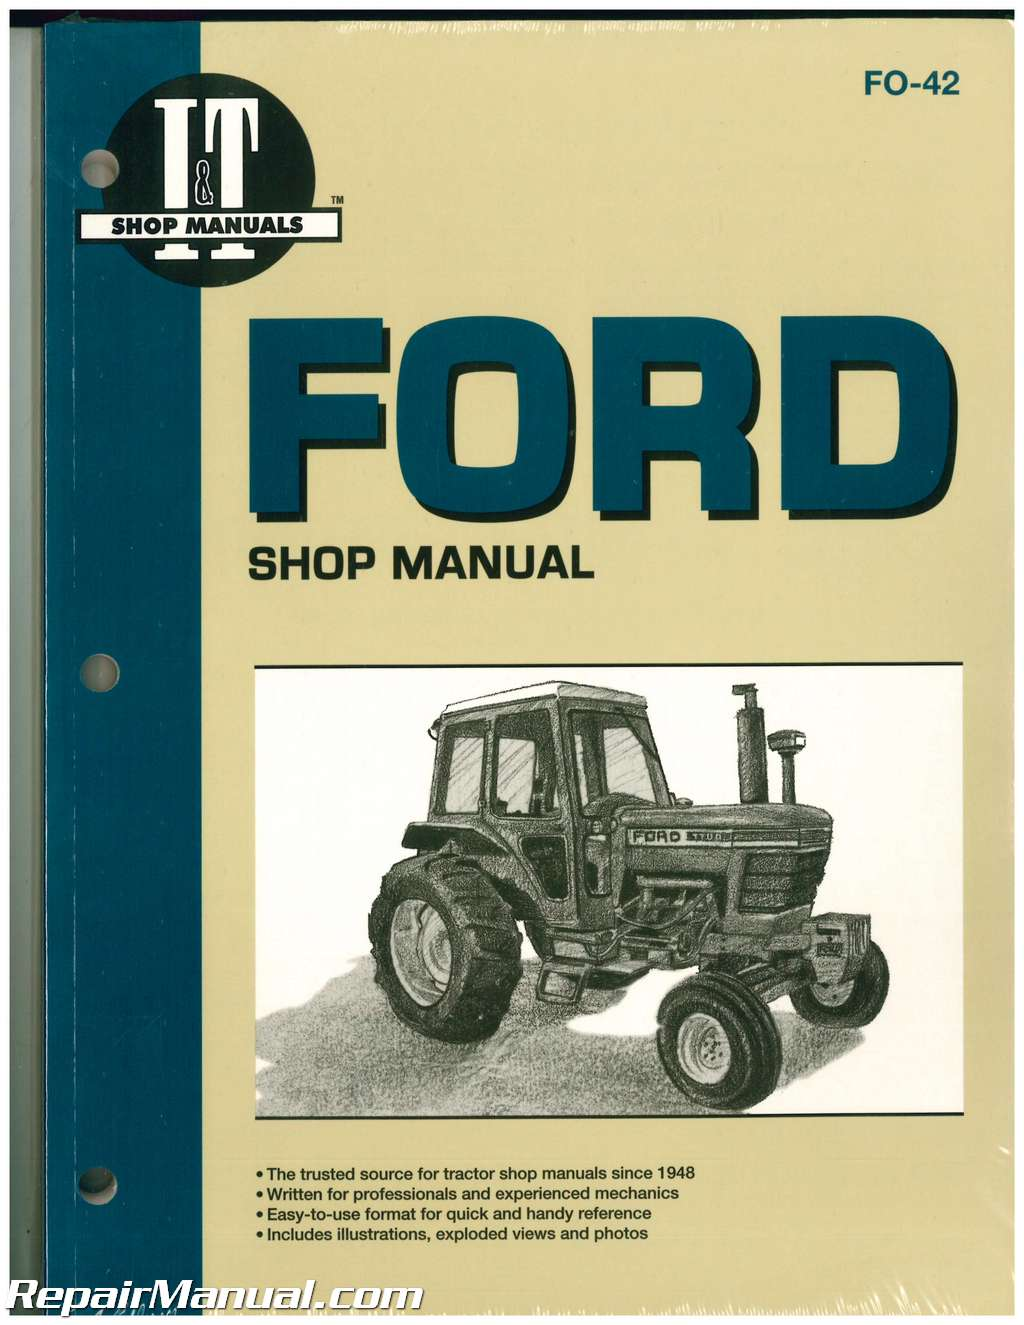 Ford 7710 Tractor Wiring Diagram. Ford. Discover Your Wiring ...  Ford Tractor Wiring Diagram on 1948 packard wiring diagram, 1948 willys wiring diagram, 1948 cadillac wiring diagram, 1948 mercury wiring diagram, 1948 lincoln wiring diagram, 1948 plymouth wiring diagram, 1948 dodge wiring diagram, 1948 ford 8n manual, 1948 jeep wiring diagram, 1948 ferguson tractor wiring diagram, ford 9n tractor distributor diagram, 1948 oldsmobile wiring diagram, 1948 studebaker wiring diagram,